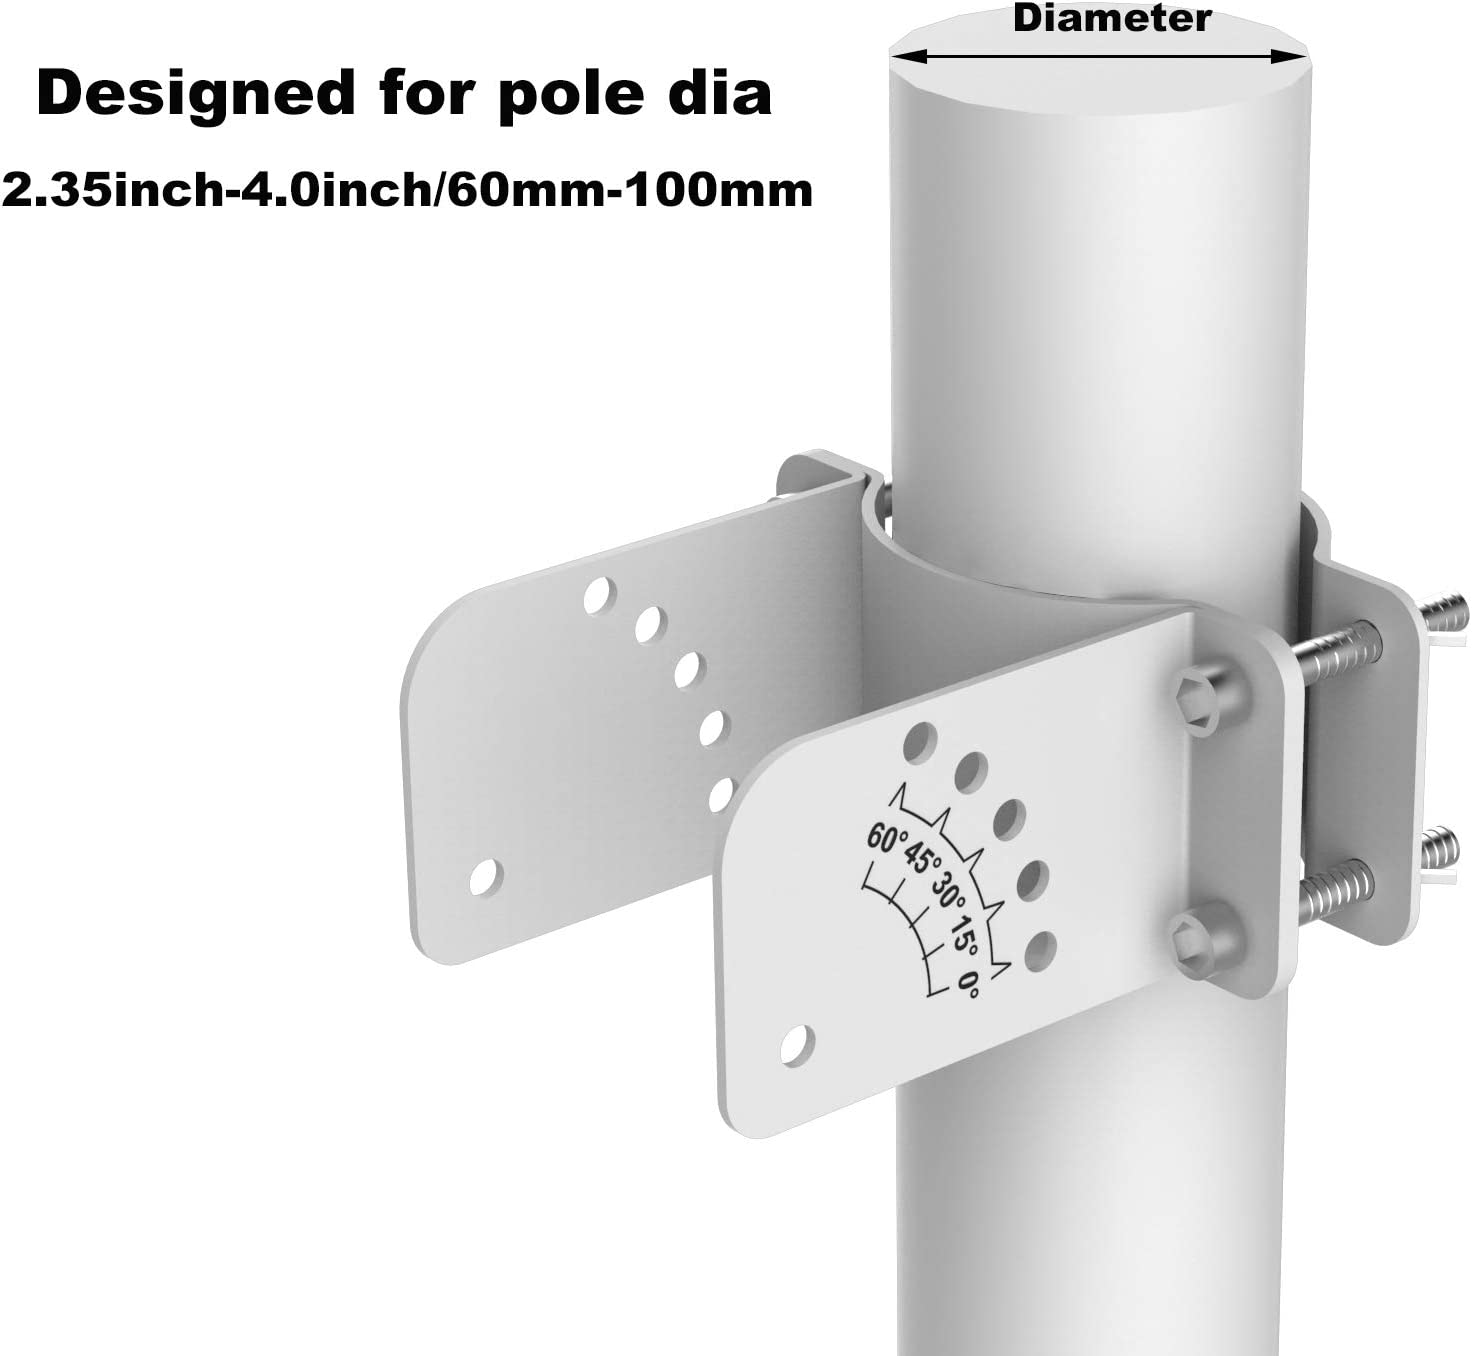 SUNER POWER Adjustable Pole Mounting Bracket Rack Kit for 50W Solar Panel - Fit Pole Dia 2.35-4.0 Inch / 60mm - 100mm: Garden & Outdoor